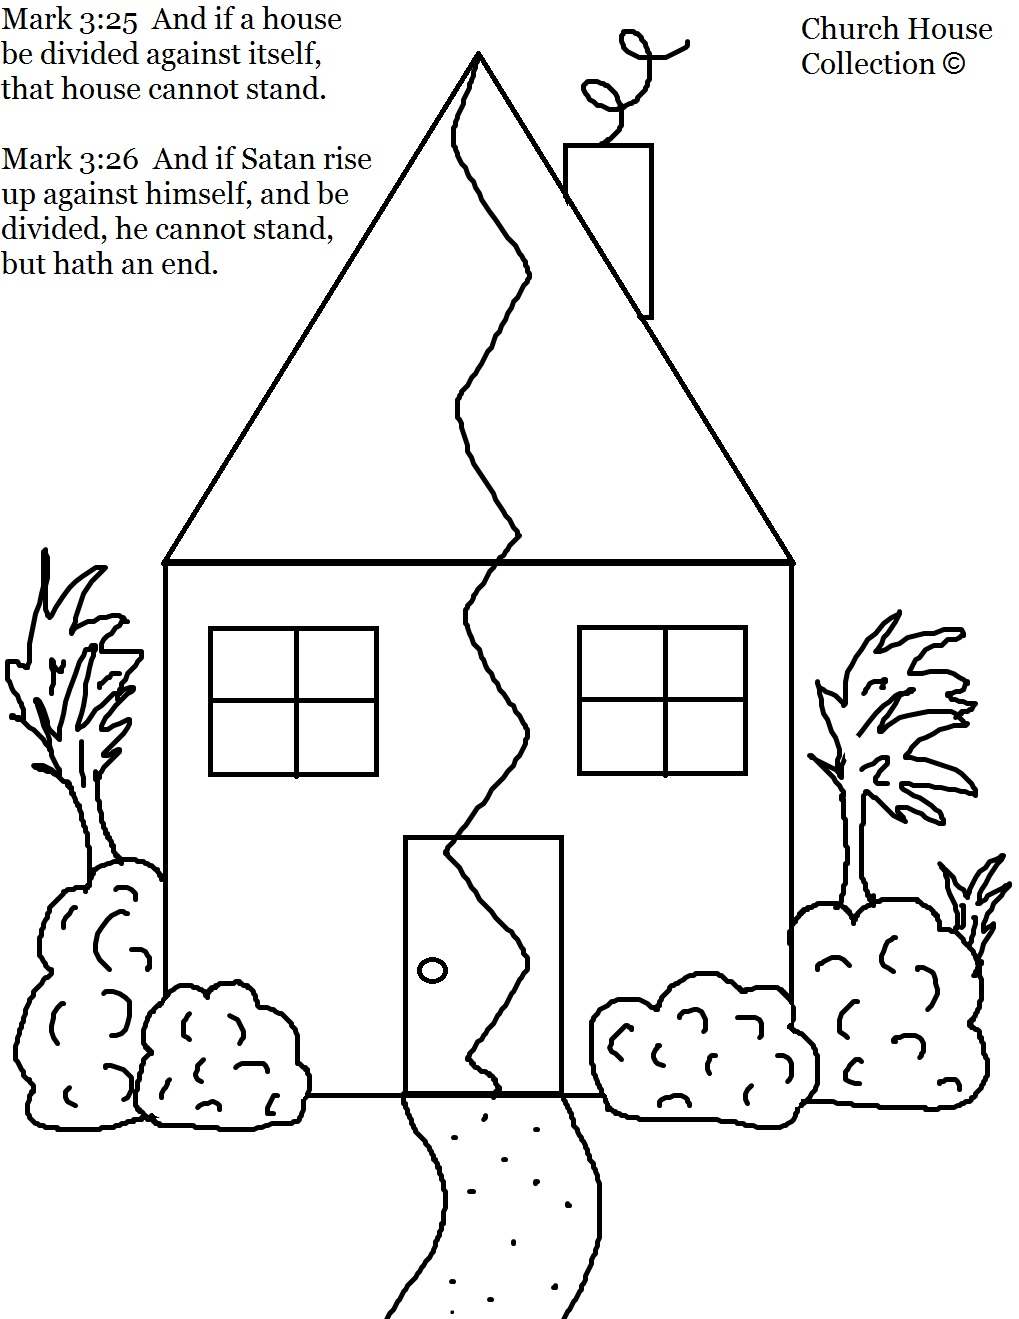 Church House Collection Blog: Coloring Page for Mark 3:25